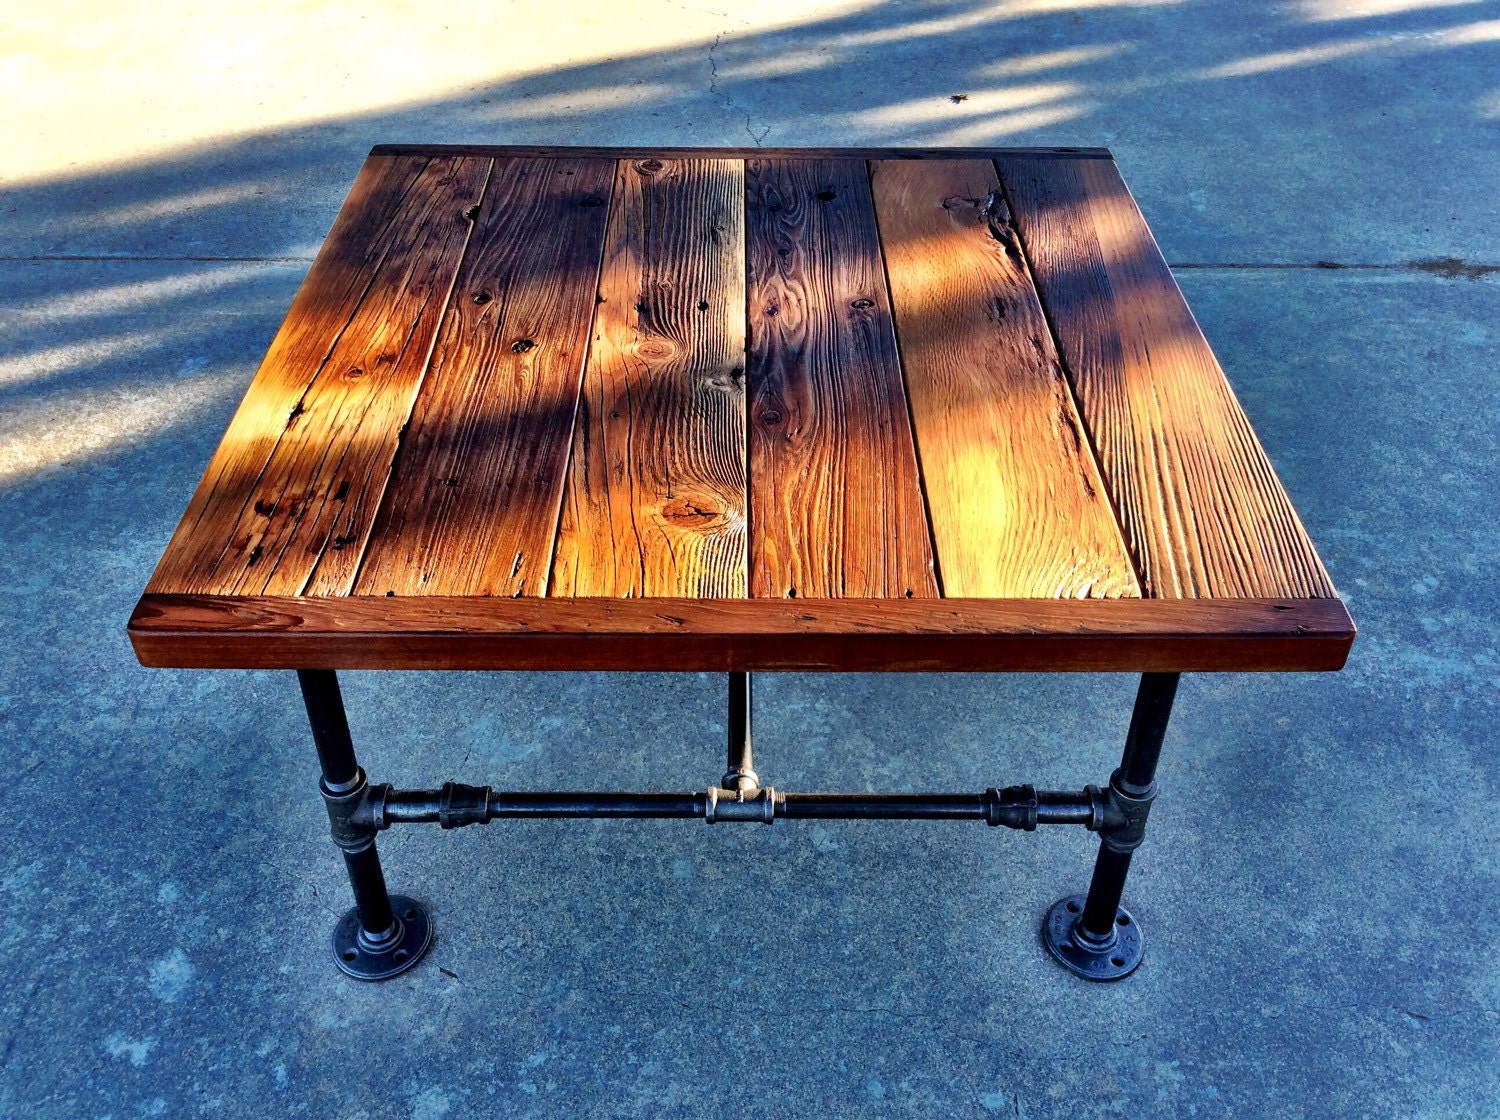 Square Industrial Coffee Table Made With Reclaimed Wood And. Fresh Desk Api. Gray Desk Chair. Adp Help Desk Number. Cabinet Freezer Drawer. Storage Ottoman Table. Heavy Duty Drawer Slide. Inexpensive Chest Of Drawers. Old Teacher's Desk For Sale